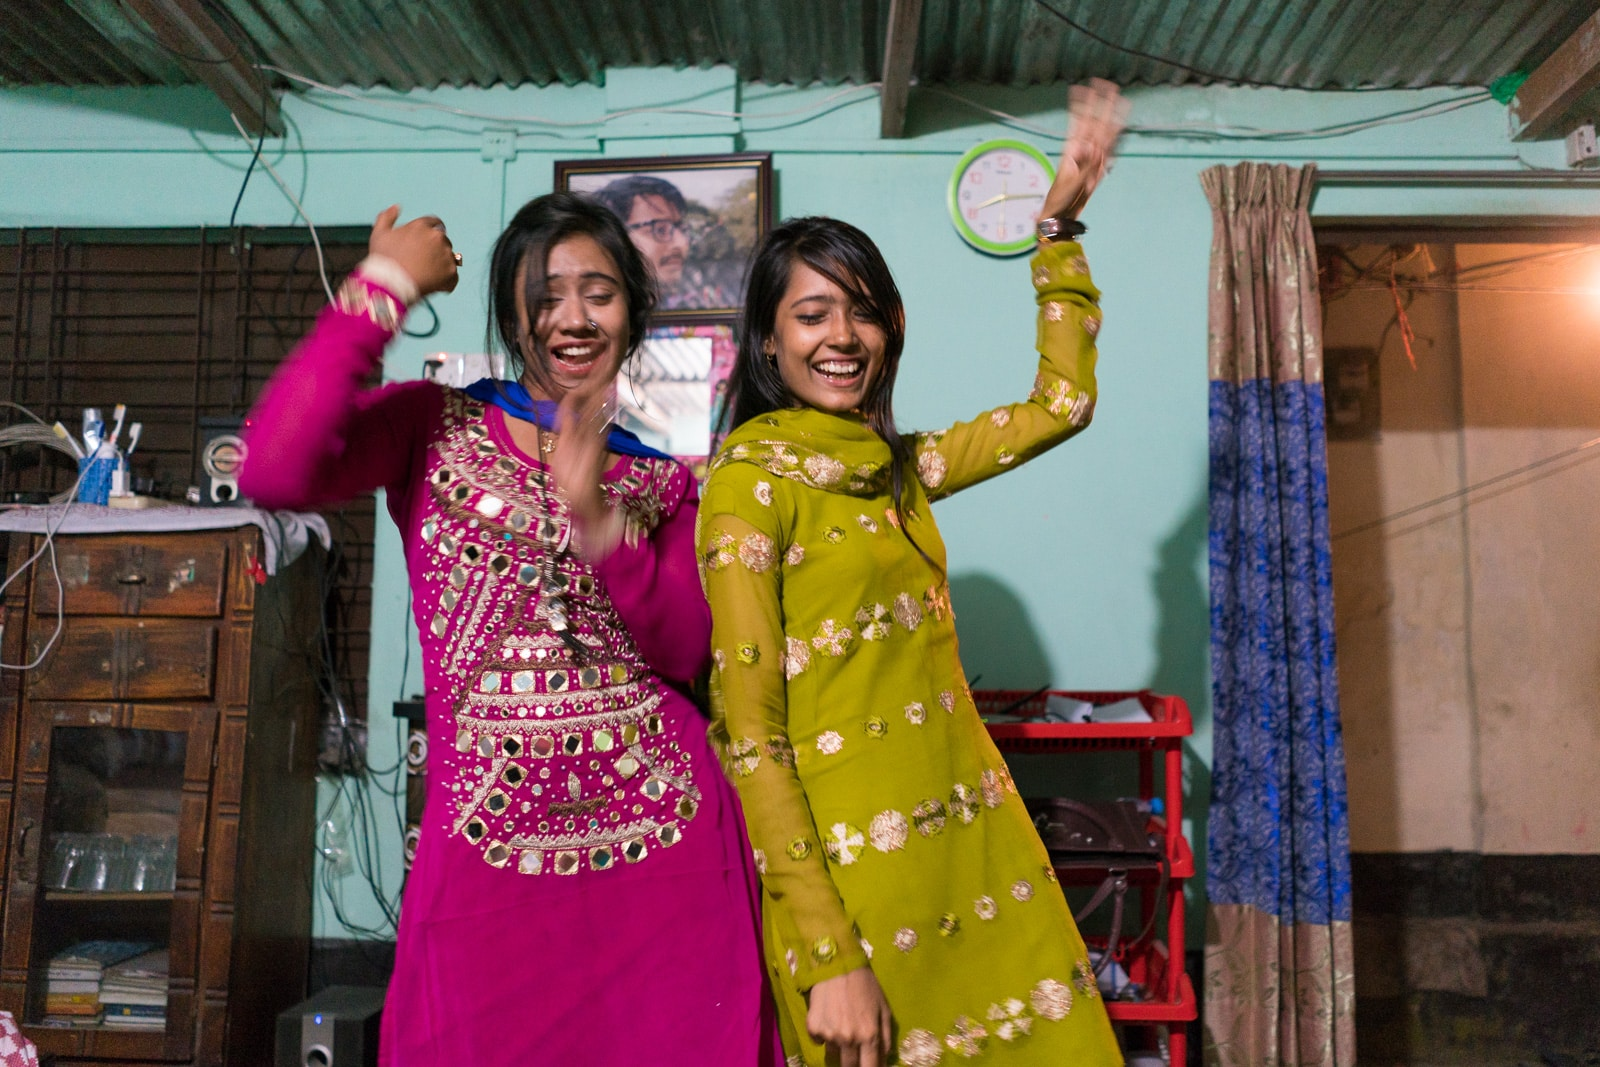 Female travel in Bangladesh - Girls dancing in a room outside Dhaka - Lost With Purpose travel blog